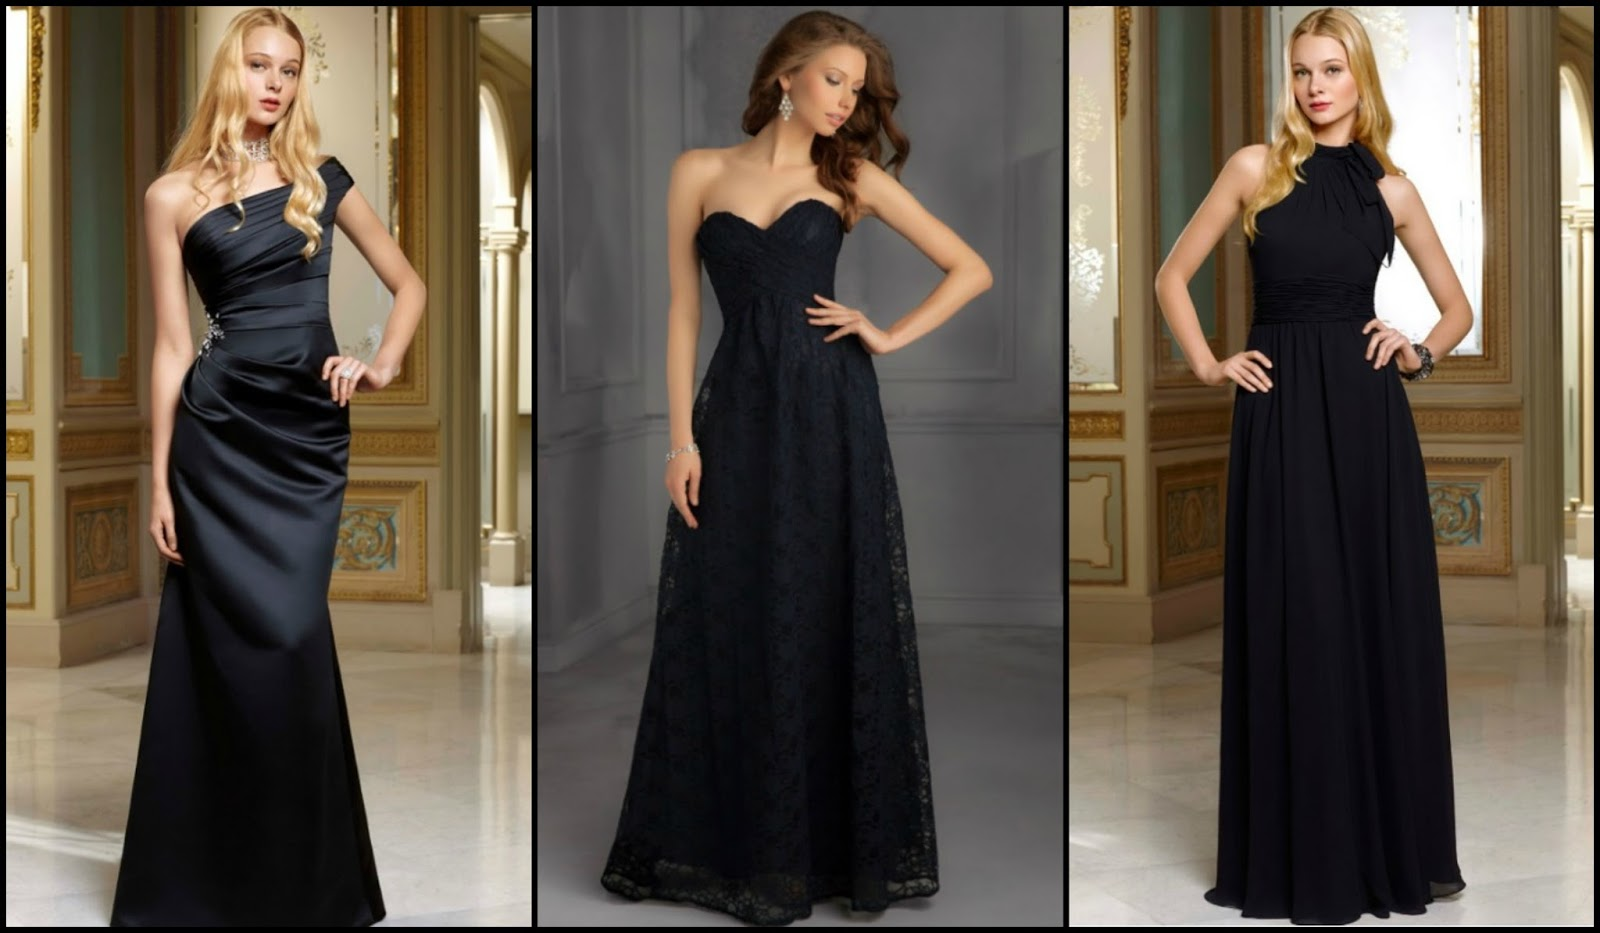 Brides of america online store elegant black bridesmaid dresses that wedding inspired him to begin suggesting this exquisite look to the brides that came into our miami bridal boutique many of them also loved the air of ombrellifo Images